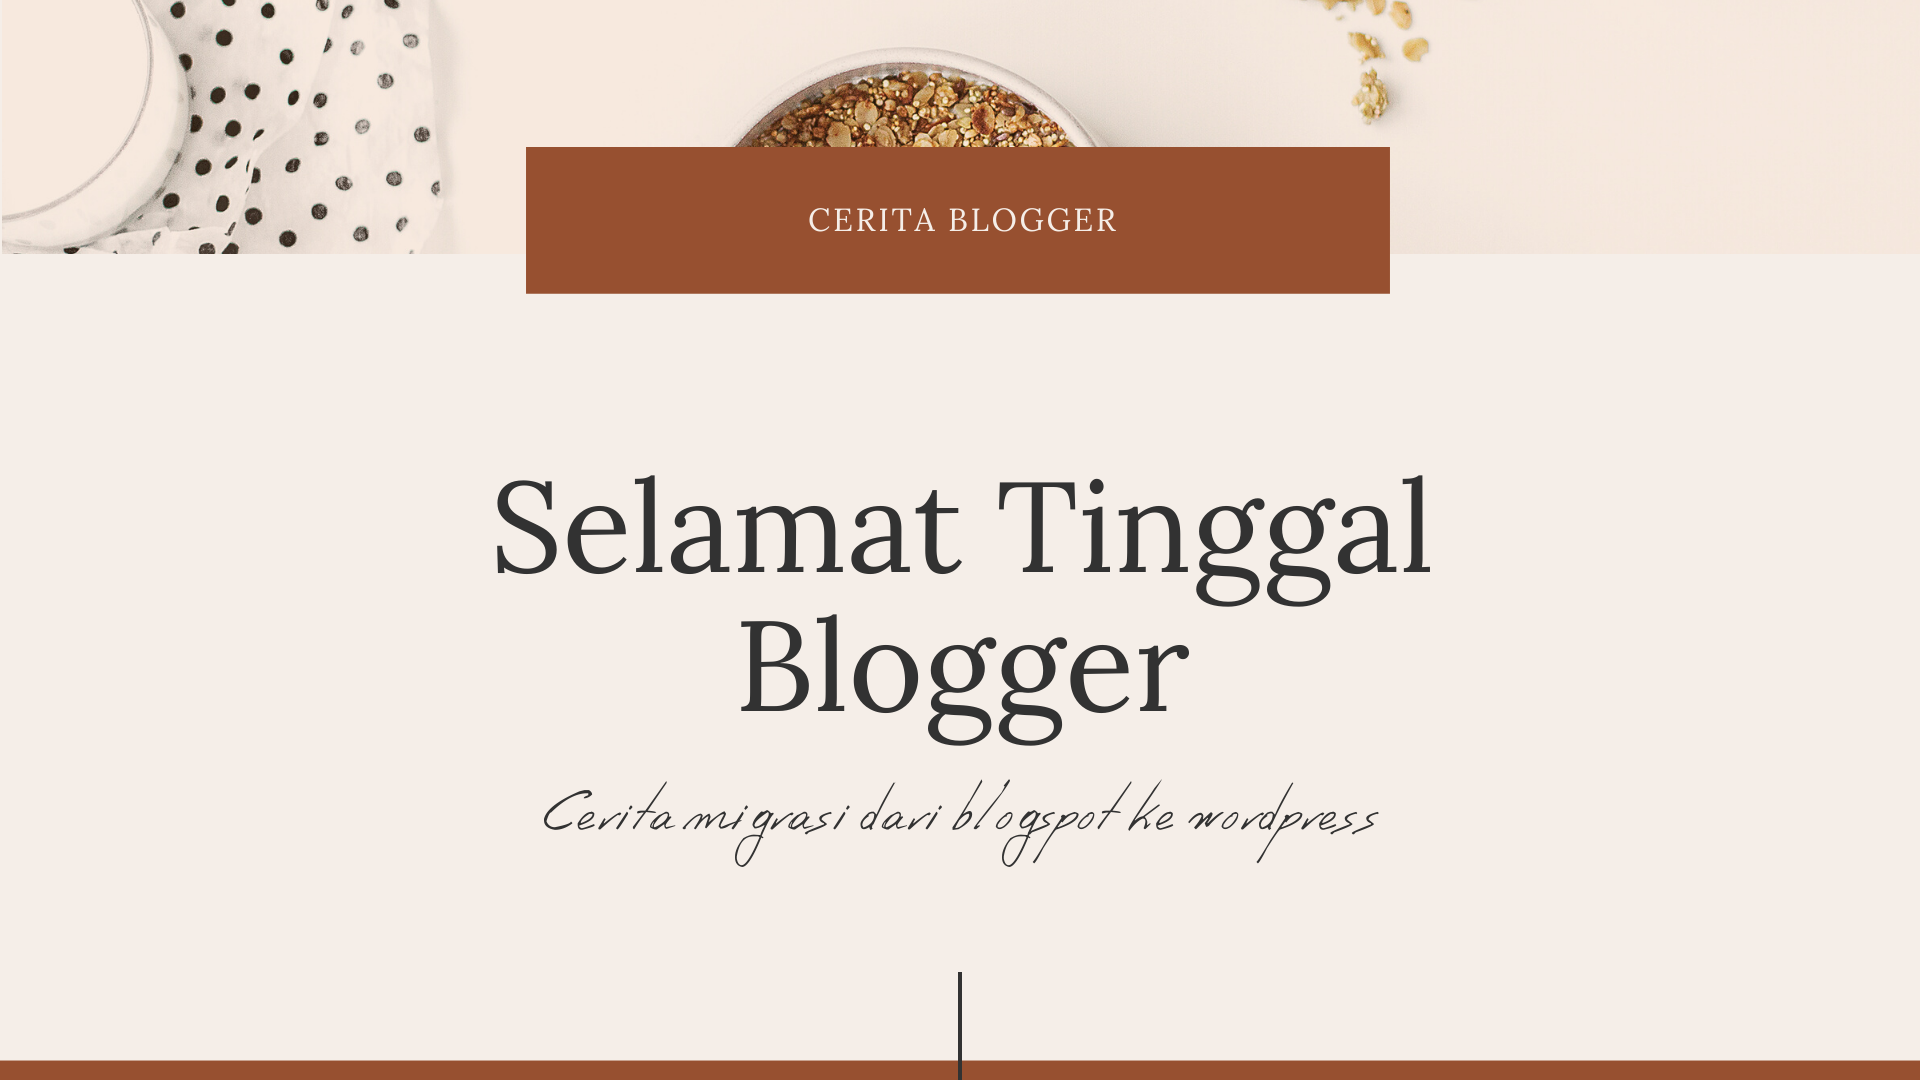 transisi blogspot ke wordpress